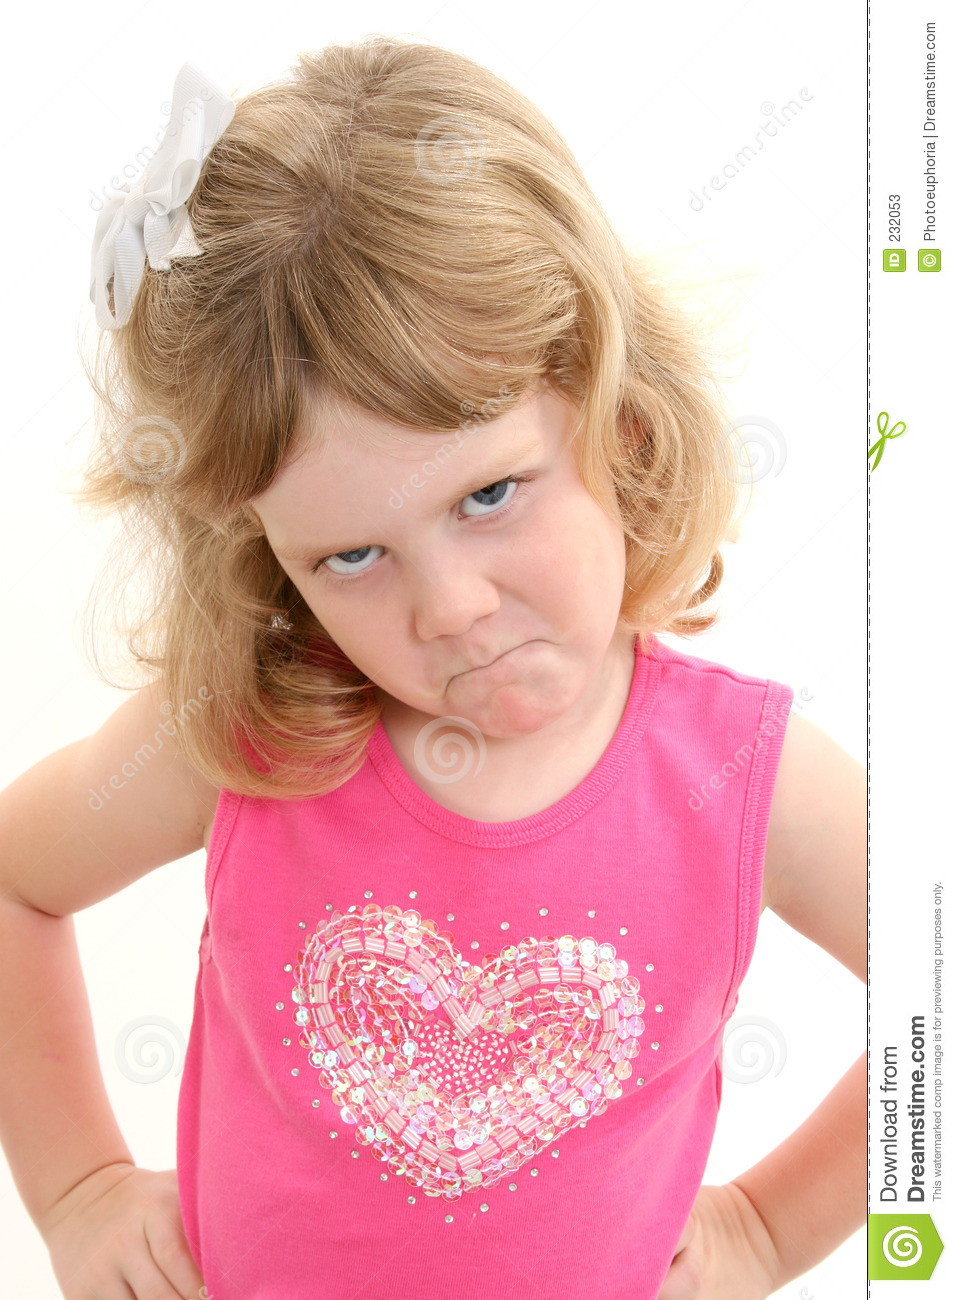 Four Year Two Year Community: Adorable 4 Year Old Girl Pouting With Hands On Hips Stock